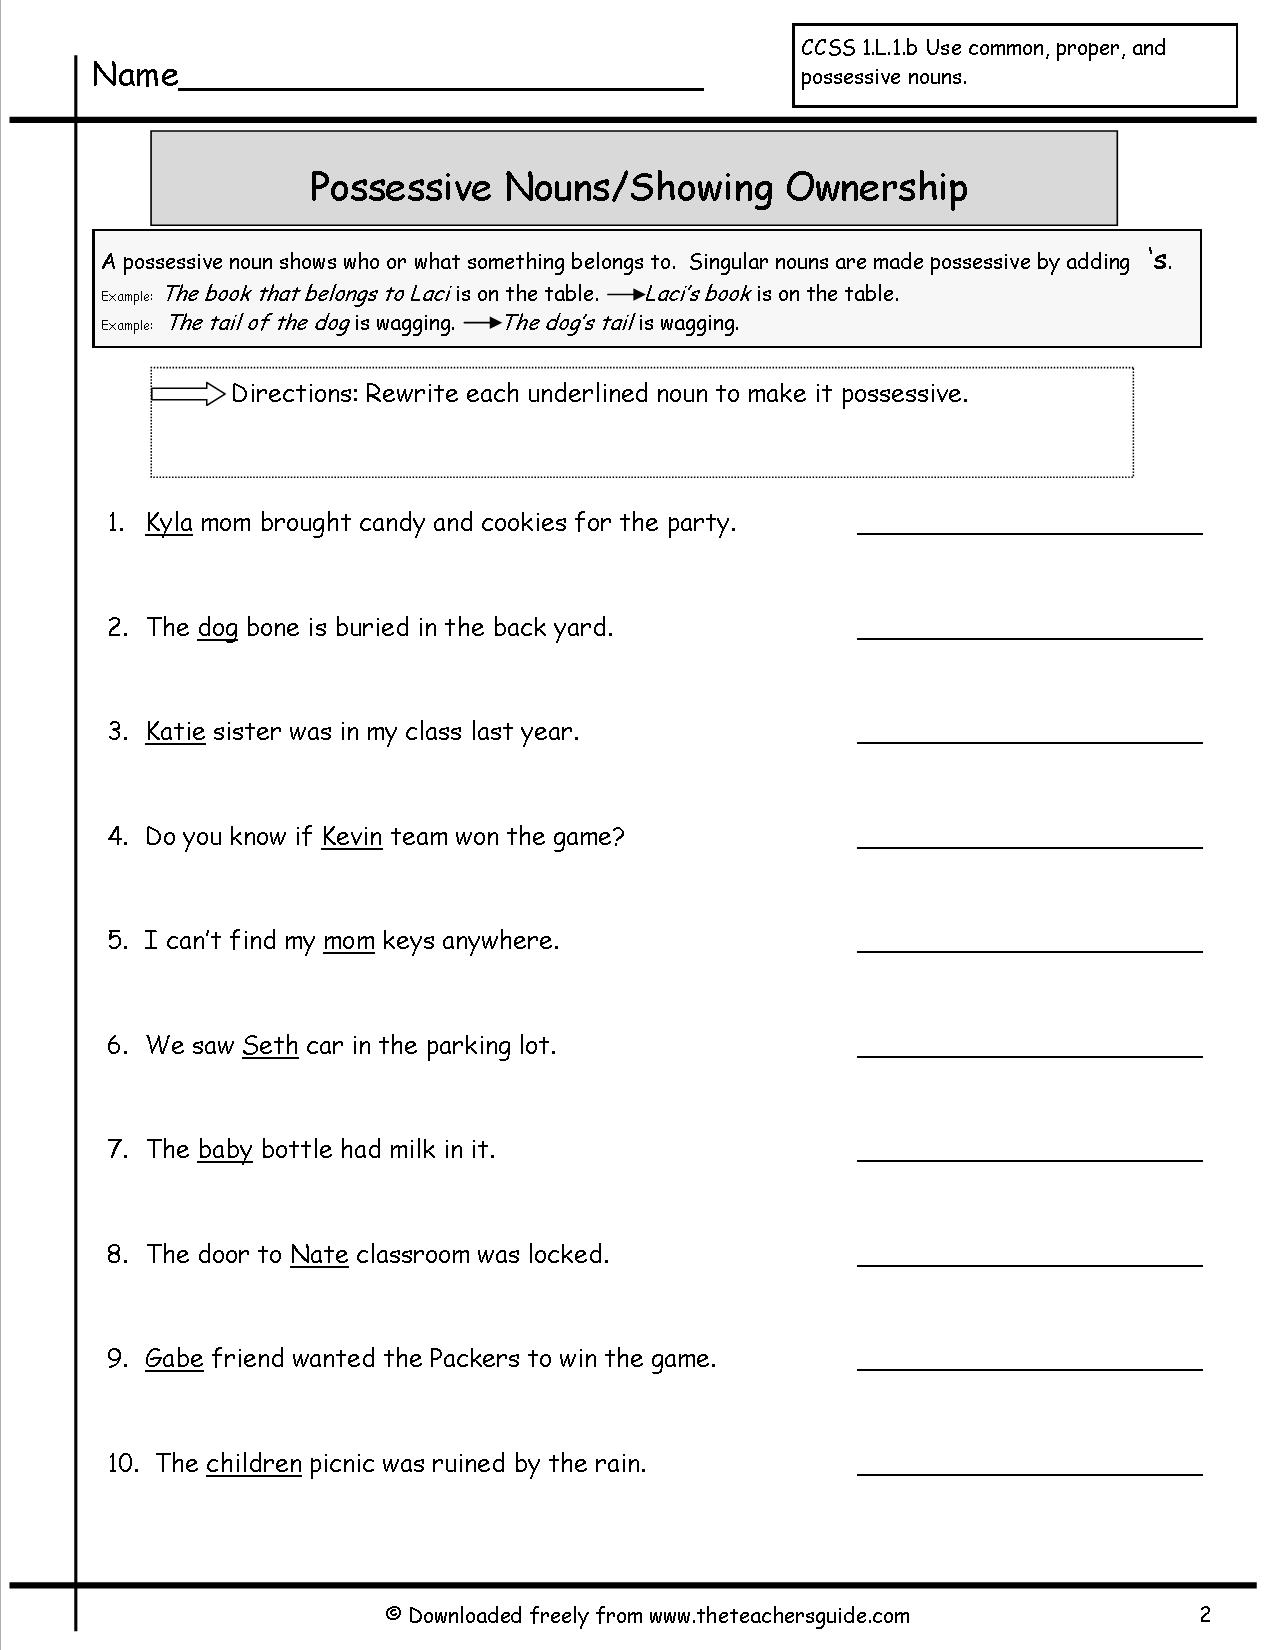 17 Best Images Of Worksheets Possessive Nouns